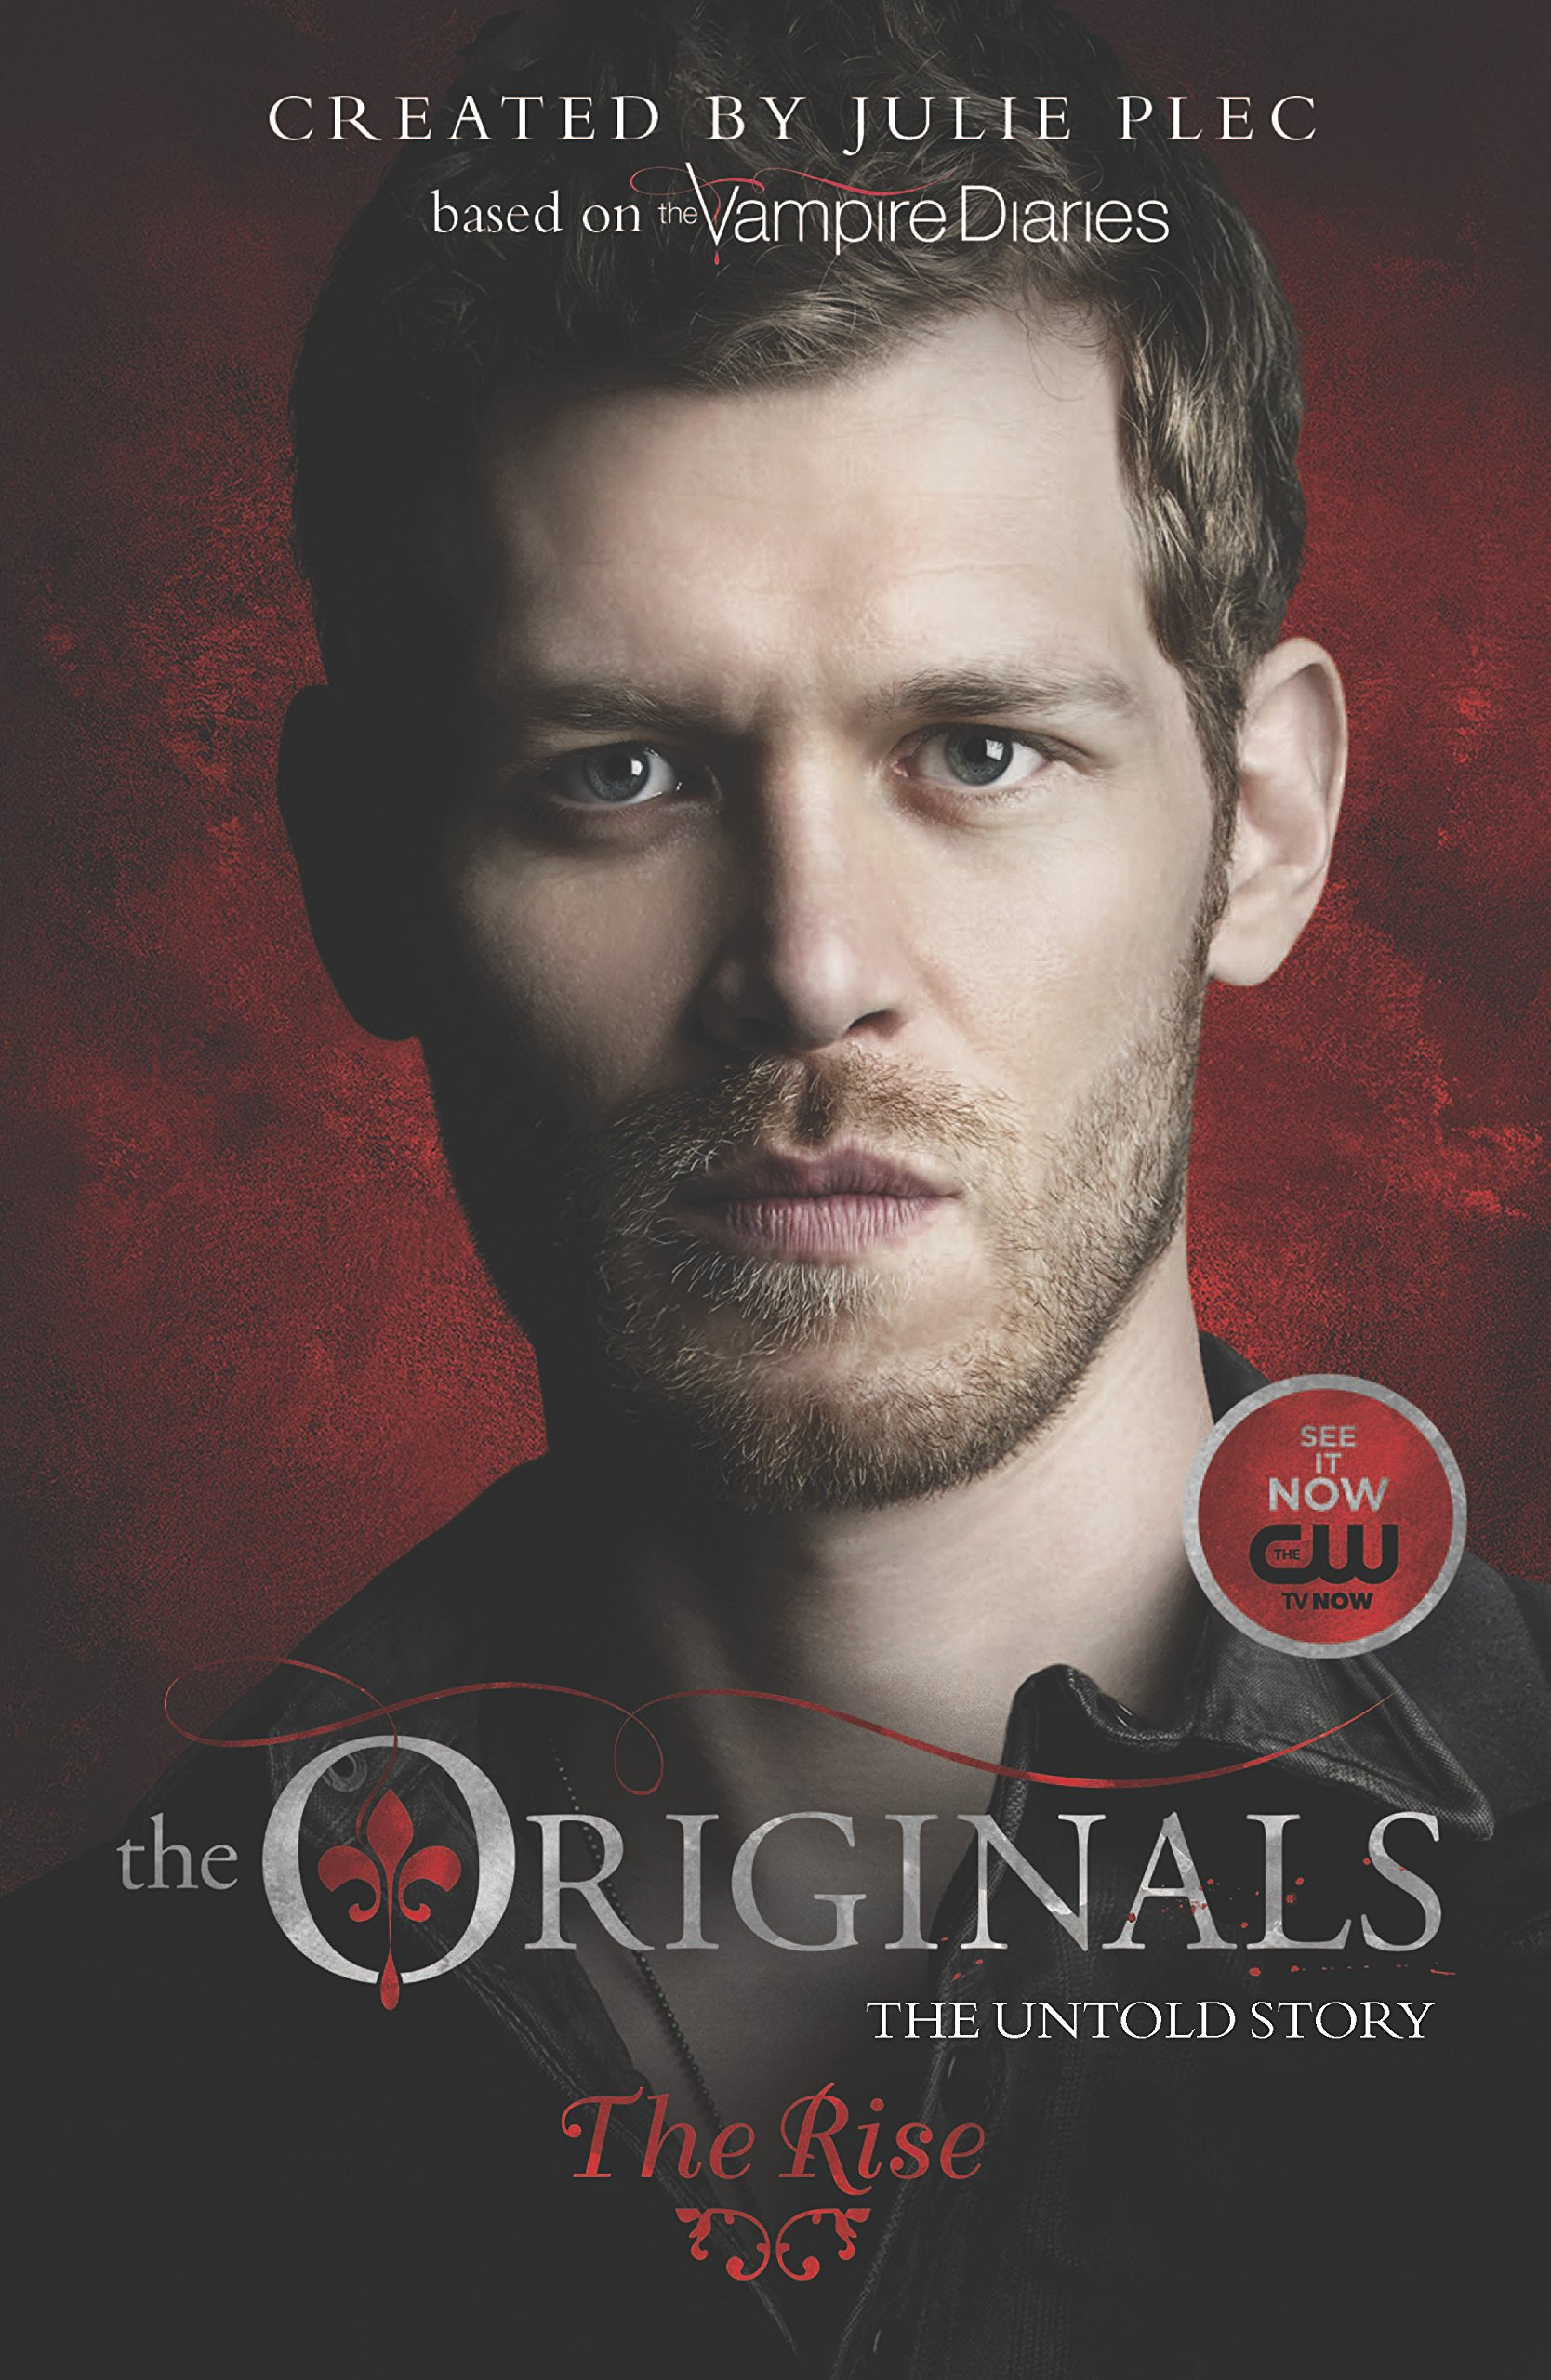 The Originals: The Rise: Plec, Julie: 9780373788897: Amazon.com: Books